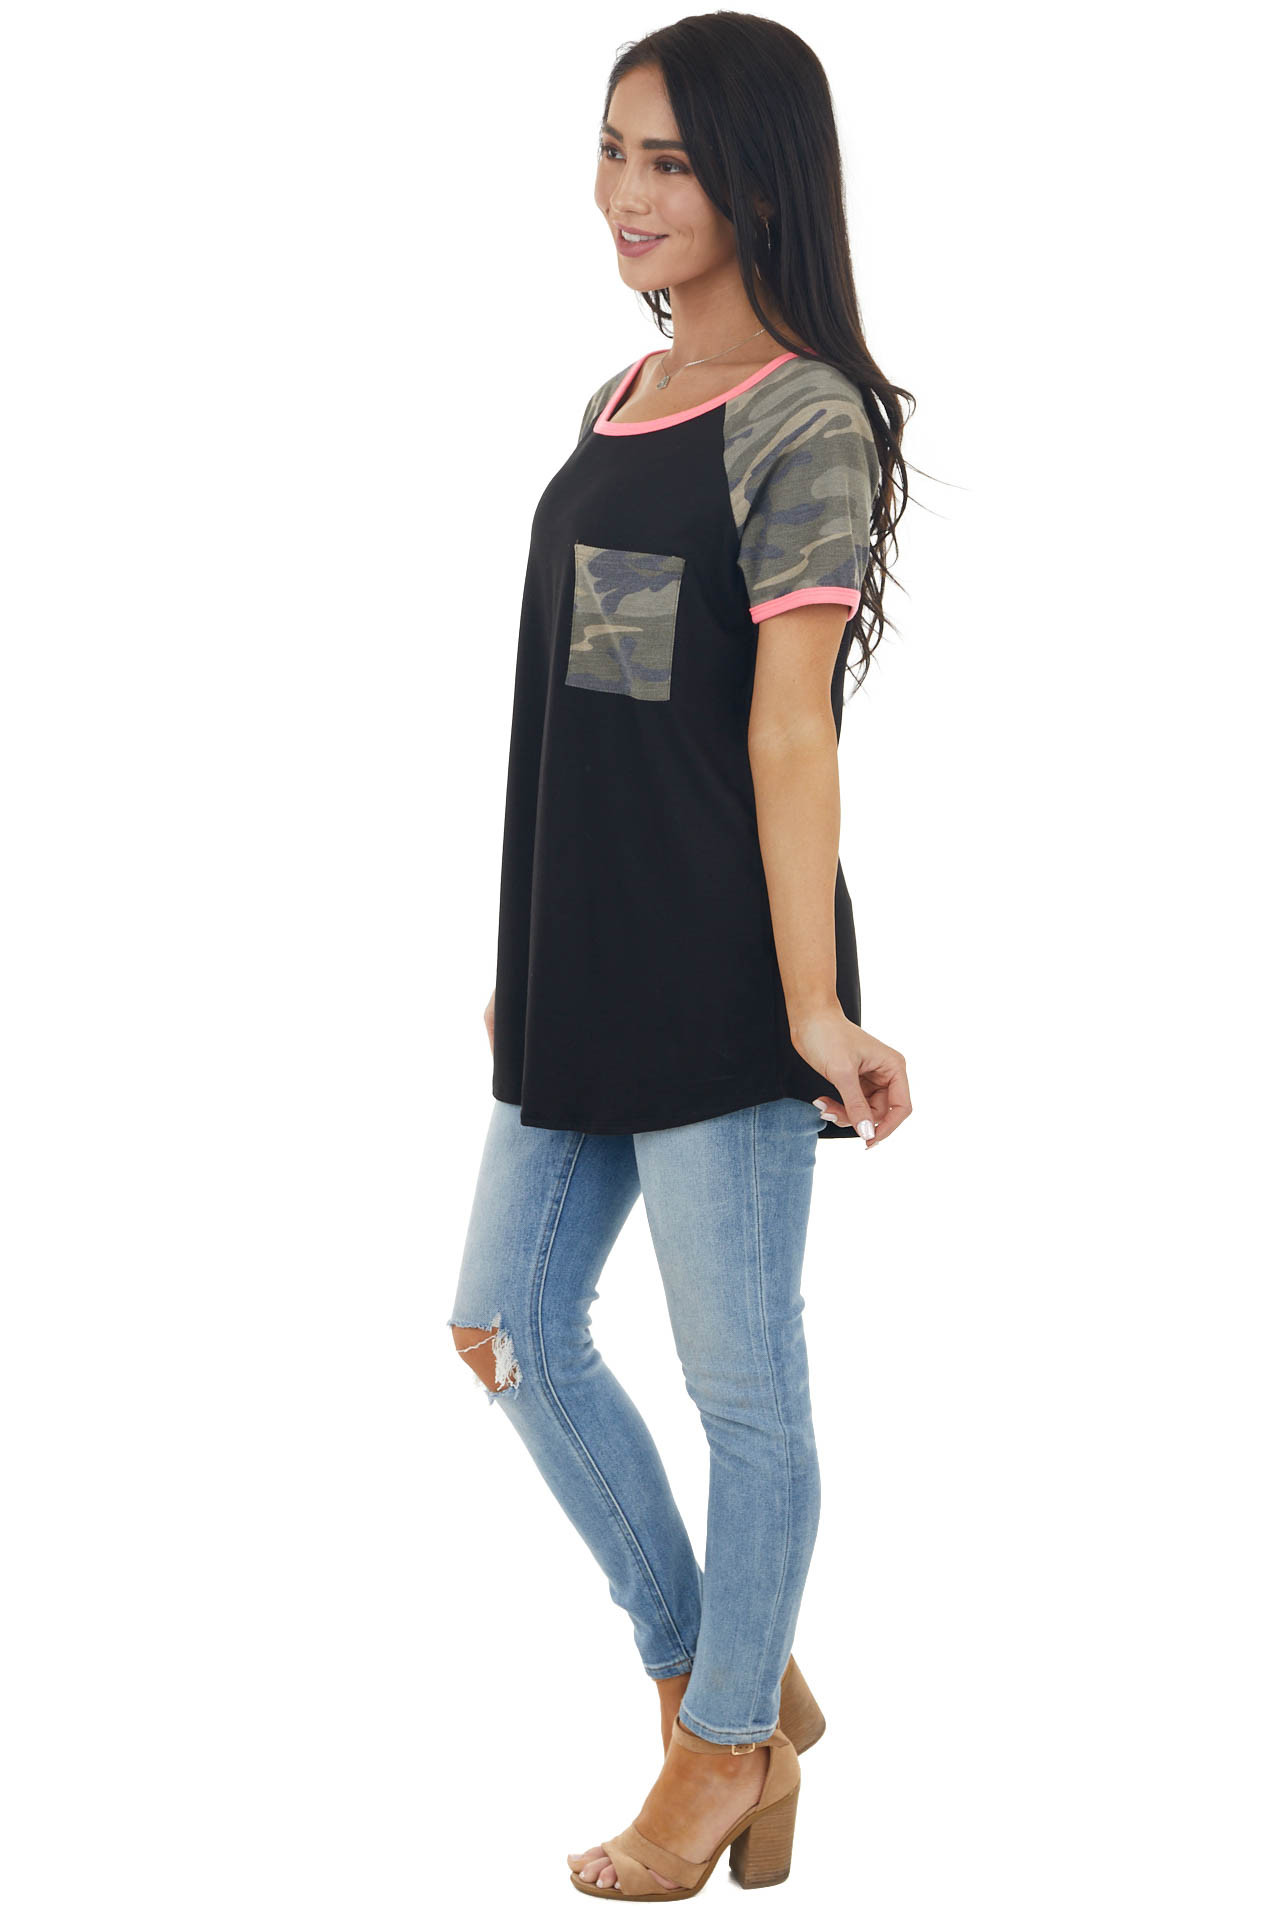 Black Raglan Short Sleeve Top with Camo and Neon Details